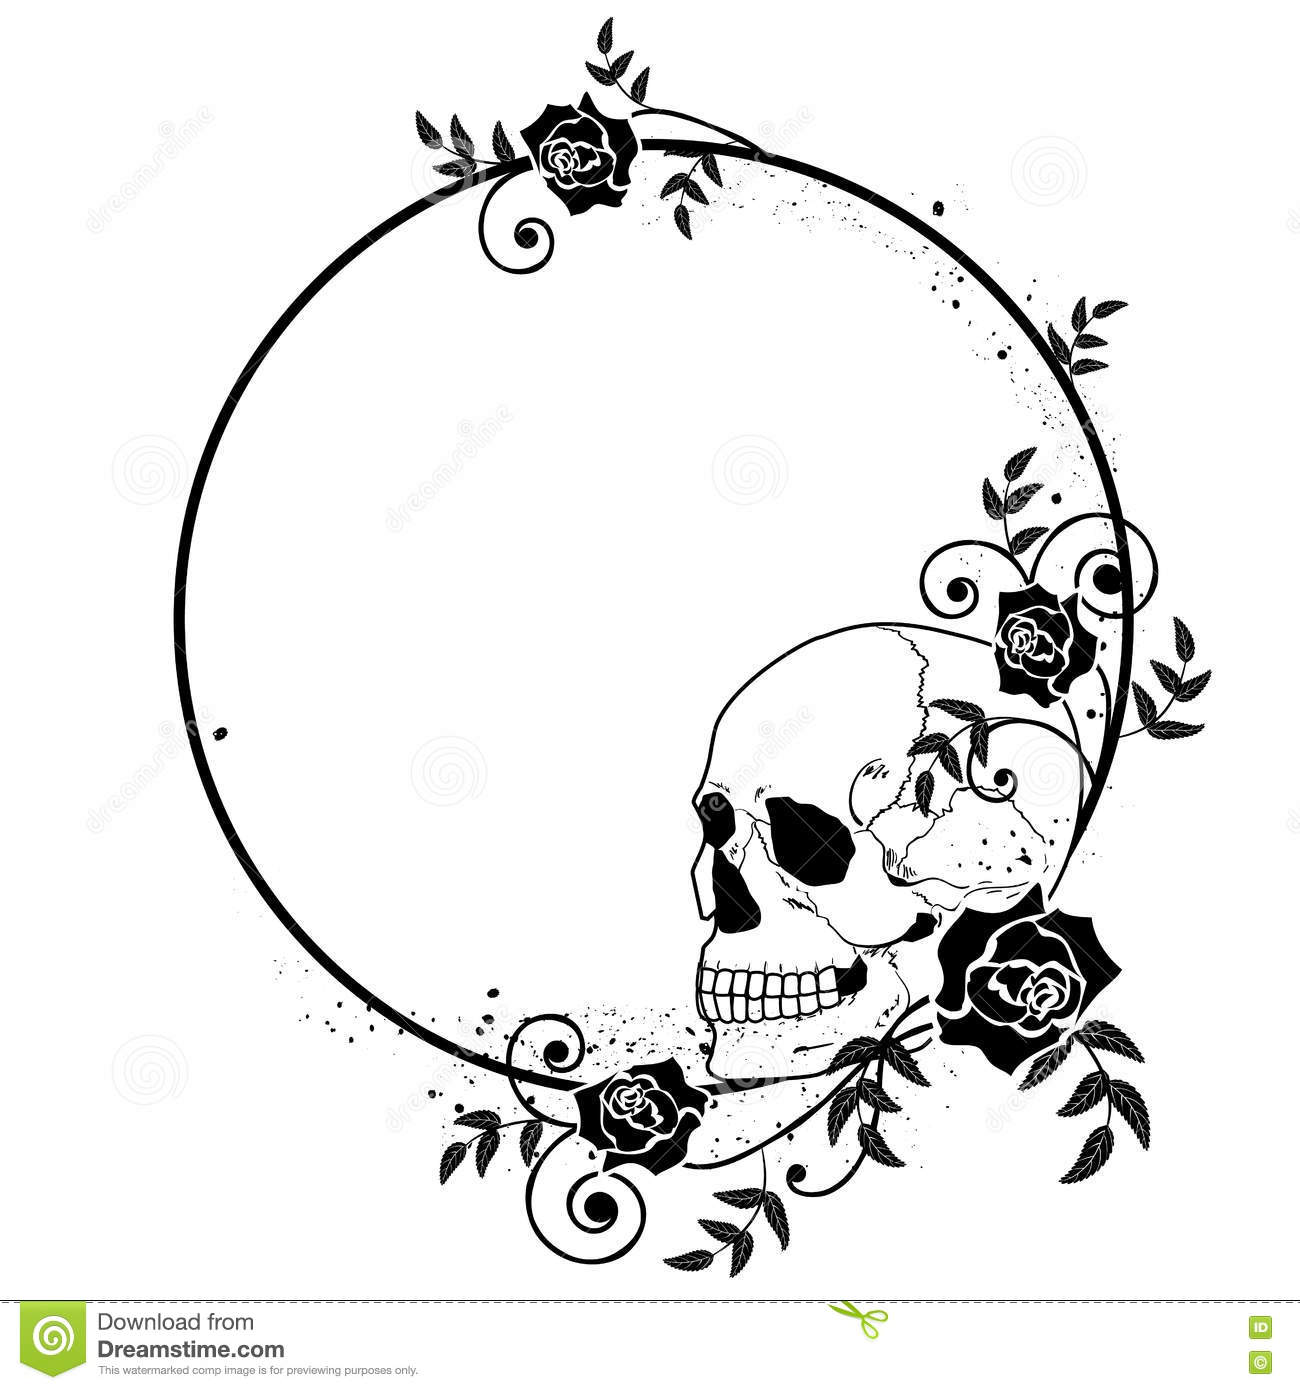 Skull and roses frame stock vector. Illustration of black - 81316835